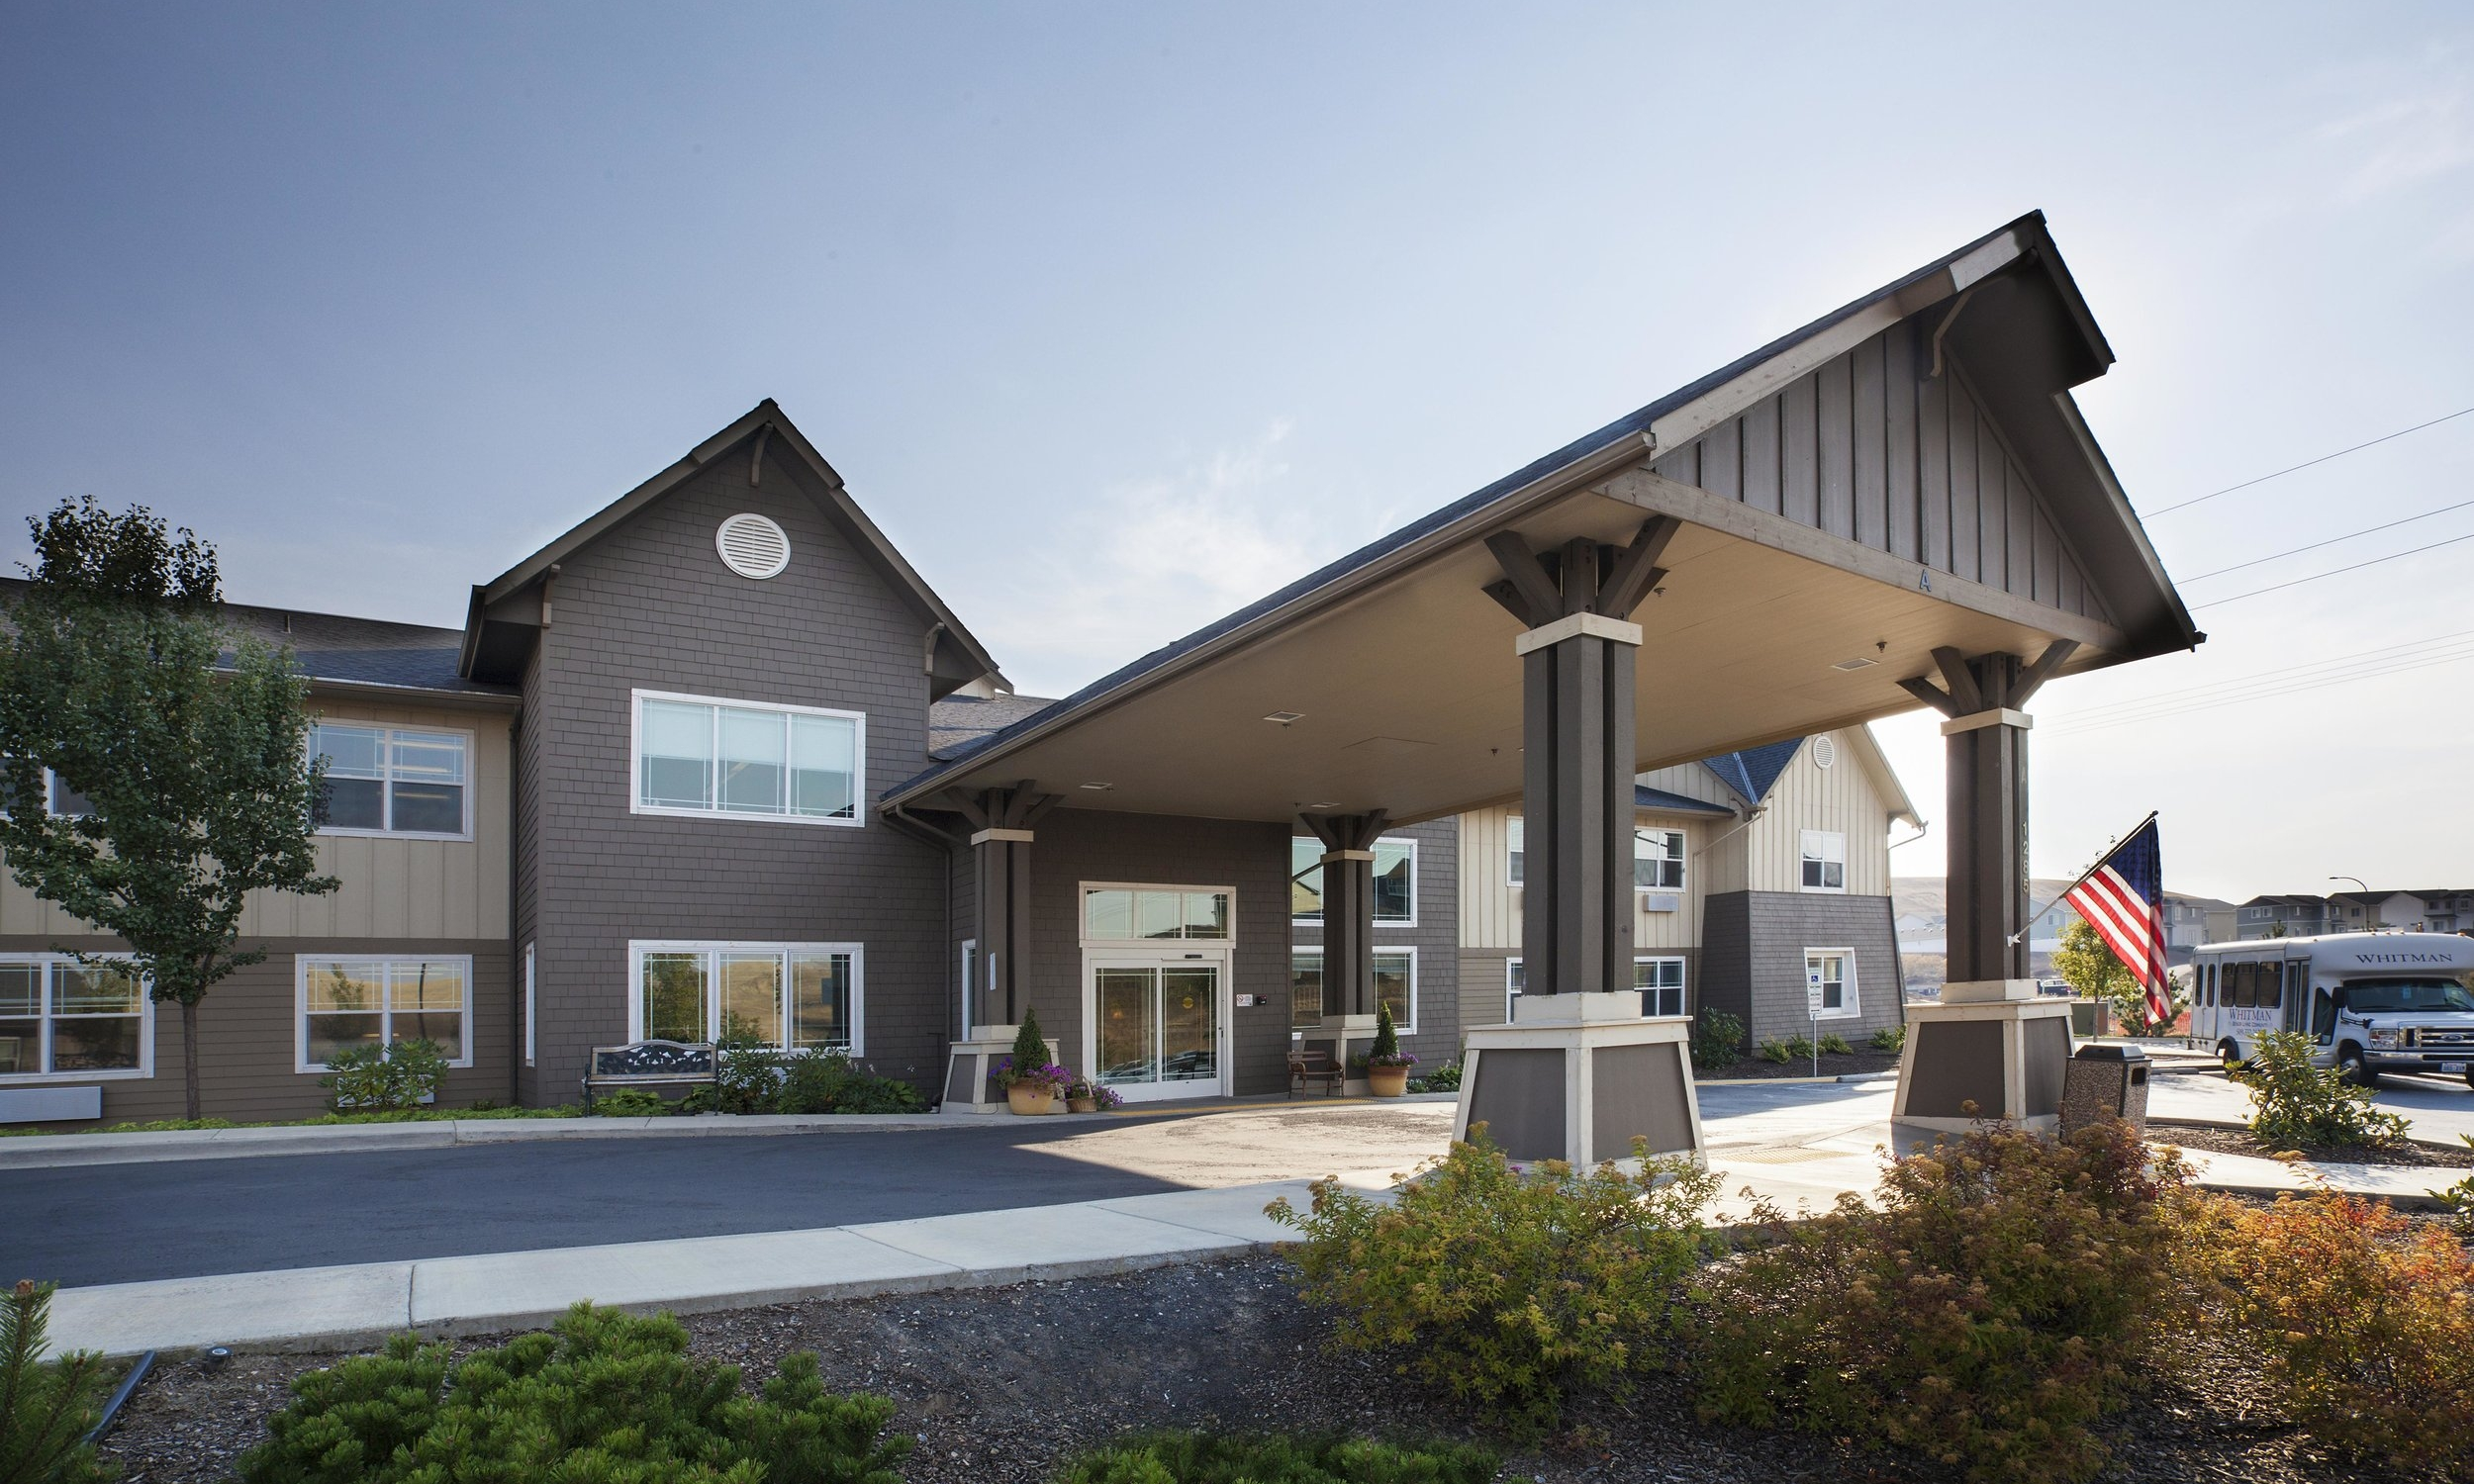 Owner: Pullman Senior Care Operator, LLC Location: Pullman, WA   This assisted living community, set on a site with panoramic views of the rolling Palouse hills and surrounding mountains, is designed to reflect the imagery of its rural Washington context. The design maximizes personal independence and choice and integrated assisted living with its common and support facilities. The campus includes a series of separate cottages and primary building with a central kitchen/ dining area, common areas, library, game rooms, and a nostalgic soda fountain.